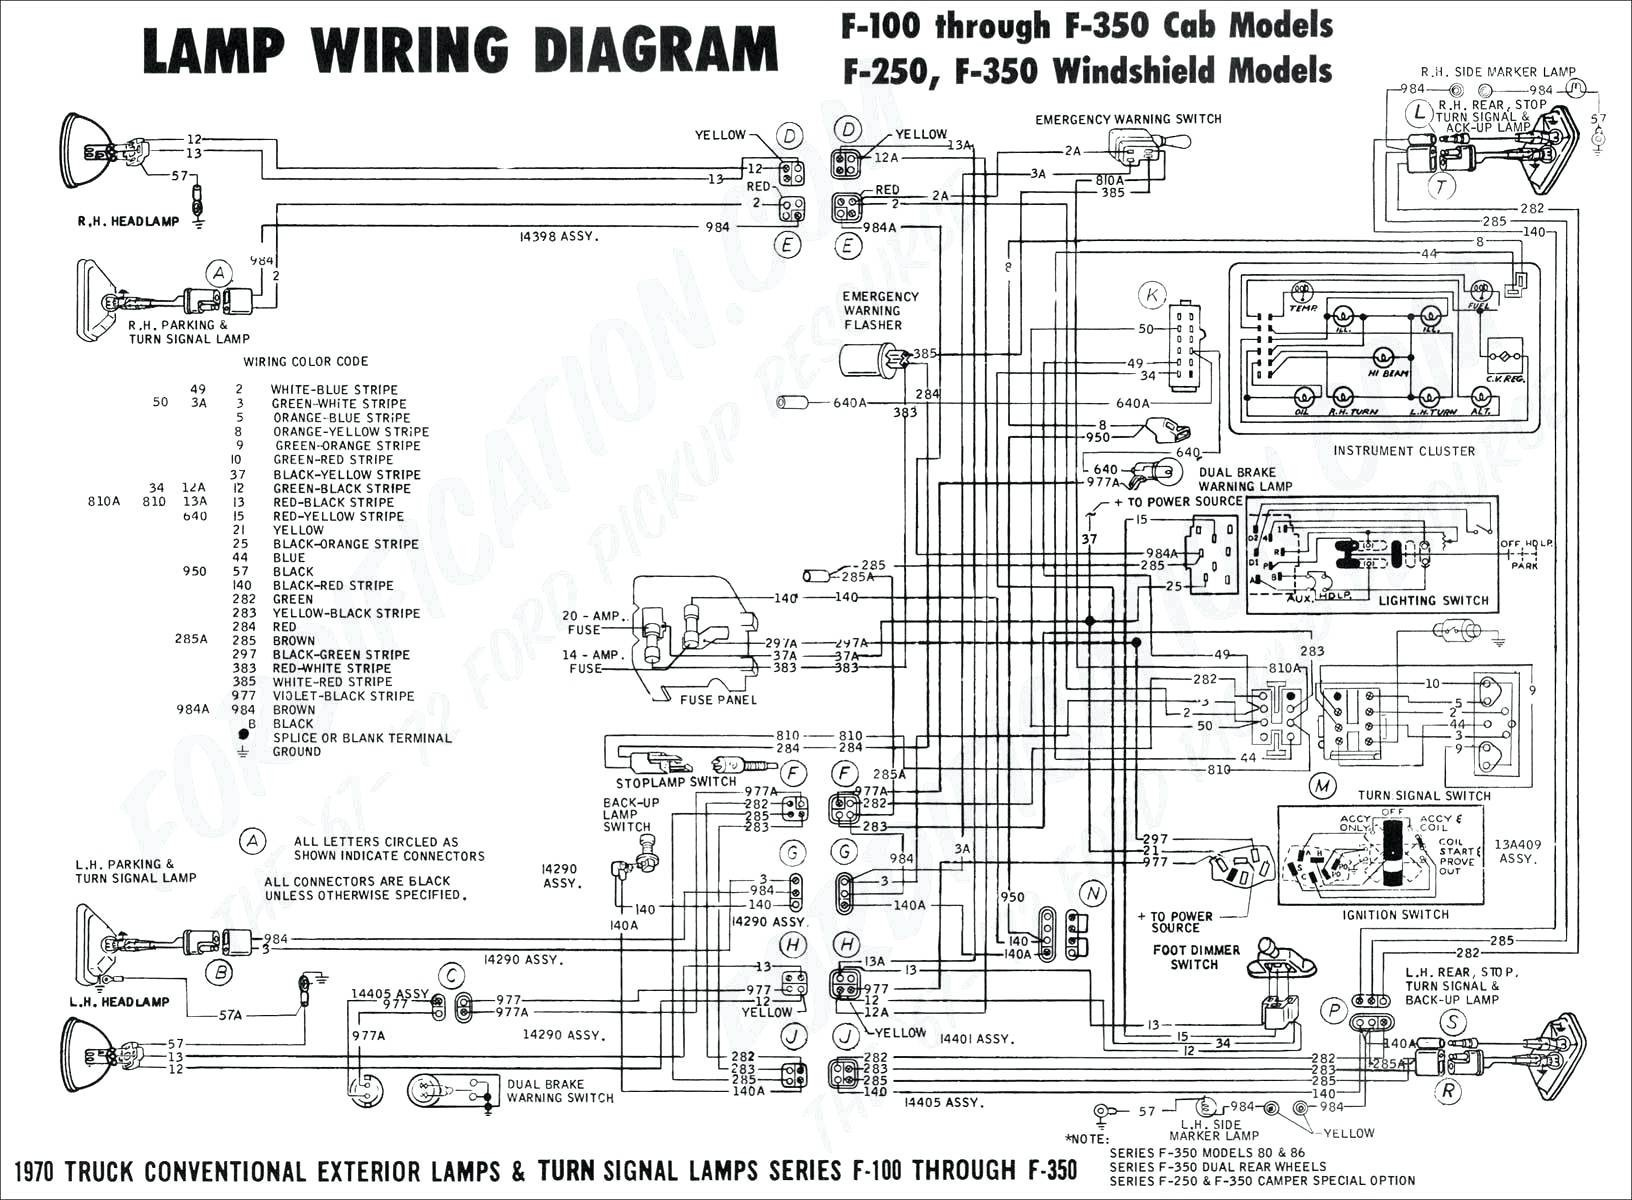 1996 Honda Civic Ex Engine Diagram Honda Civic Wiring Schematics Wiring Diagram Datasource Of 1996 Honda Civic Ex Engine Diagram 88 Honda Dx Fuse Box Wiring Diagram